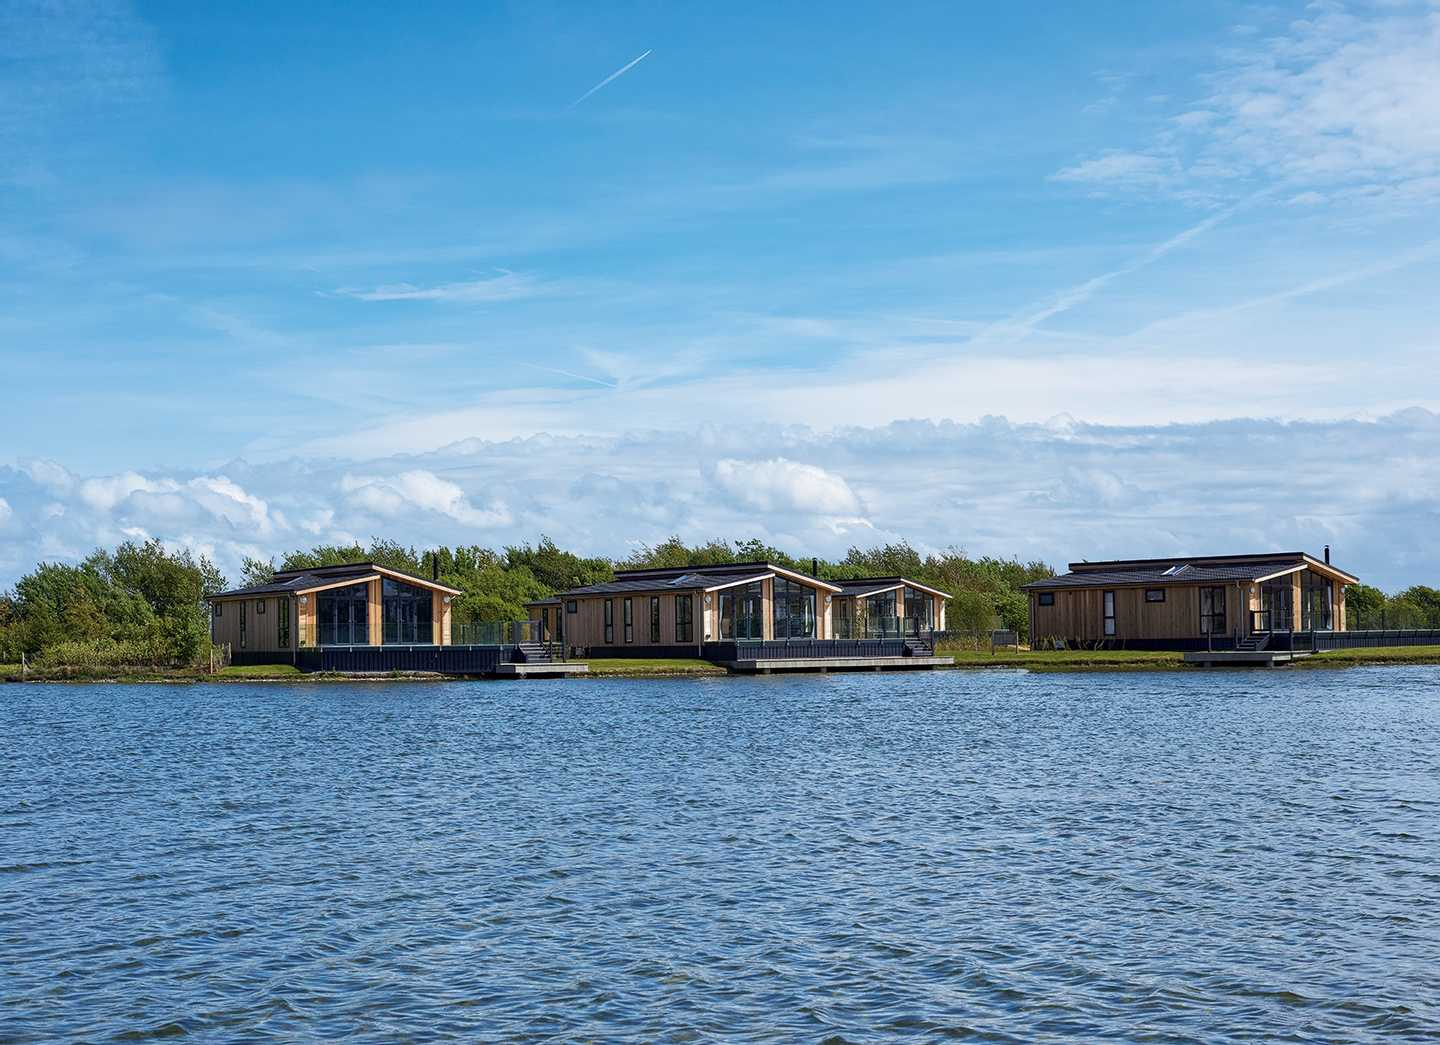 4 of our lodges at Tarka Holt perched on the large lake